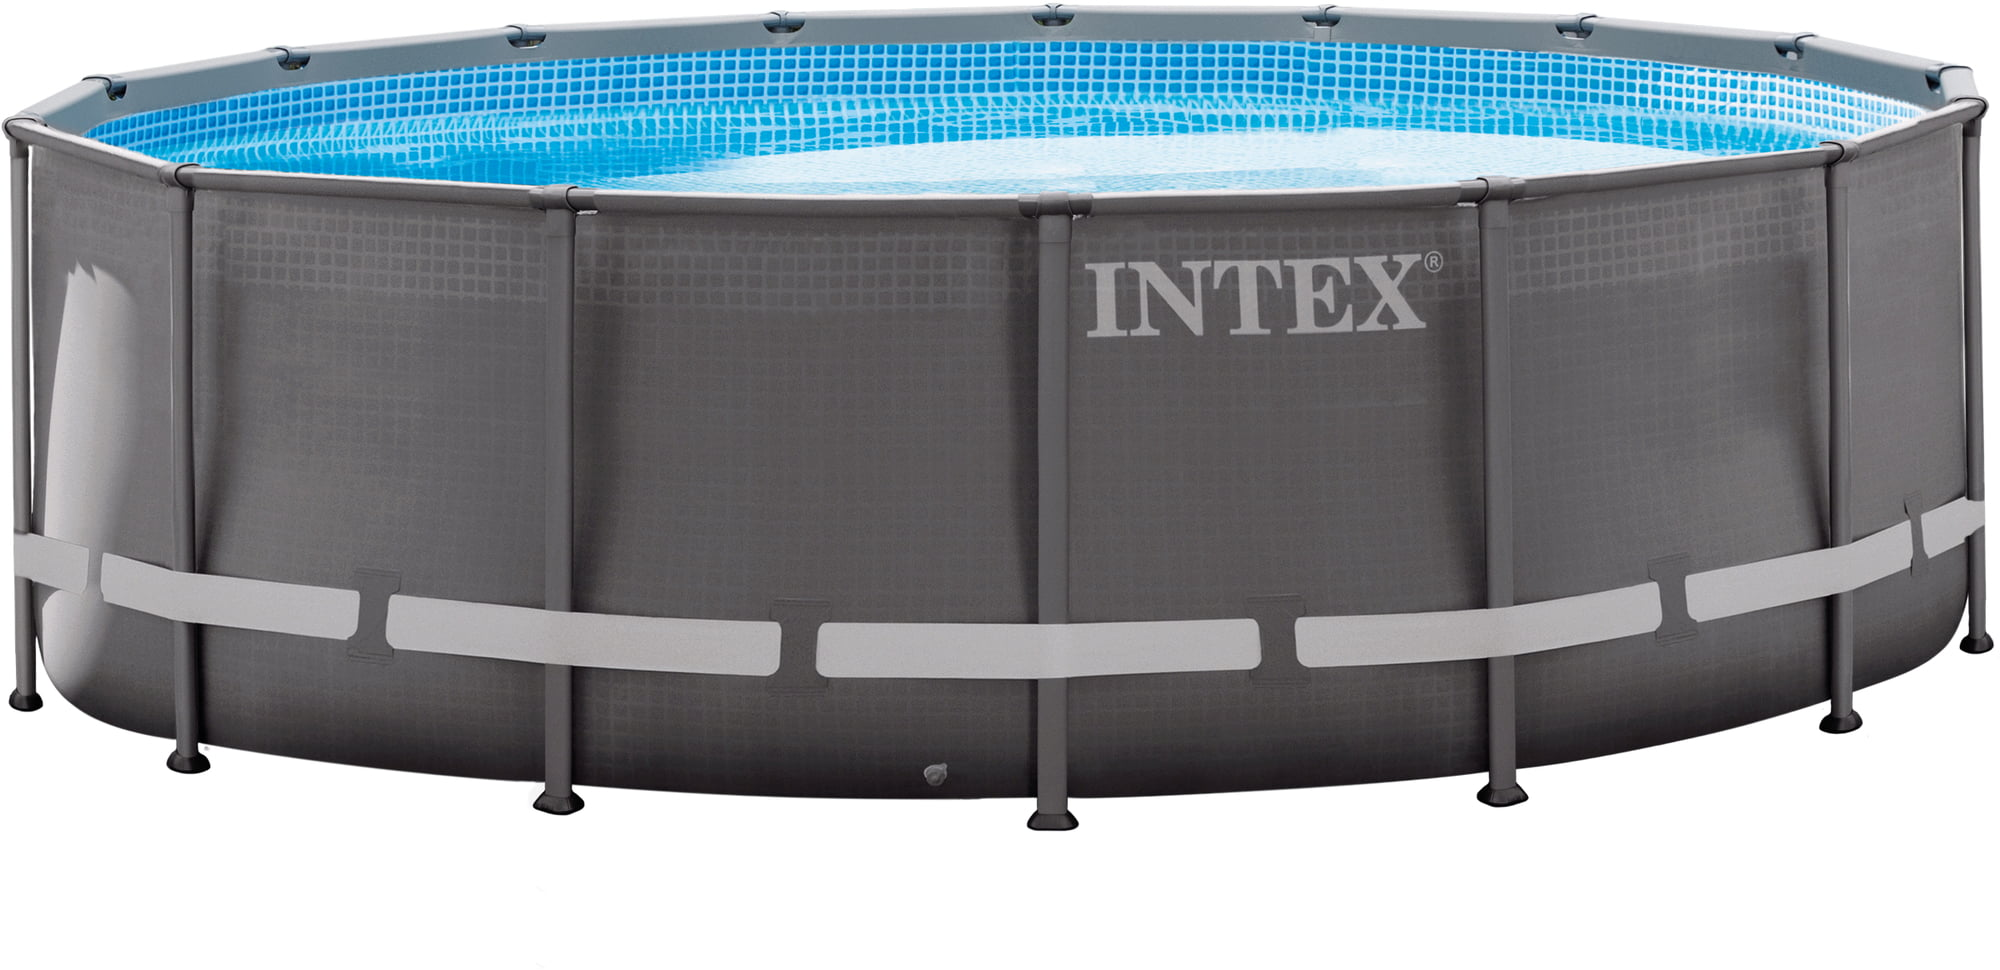 Intex Pool Frame Rund Intex Pool Frame Rund Outdoor Elegant Big Ultra Power Steel Frame